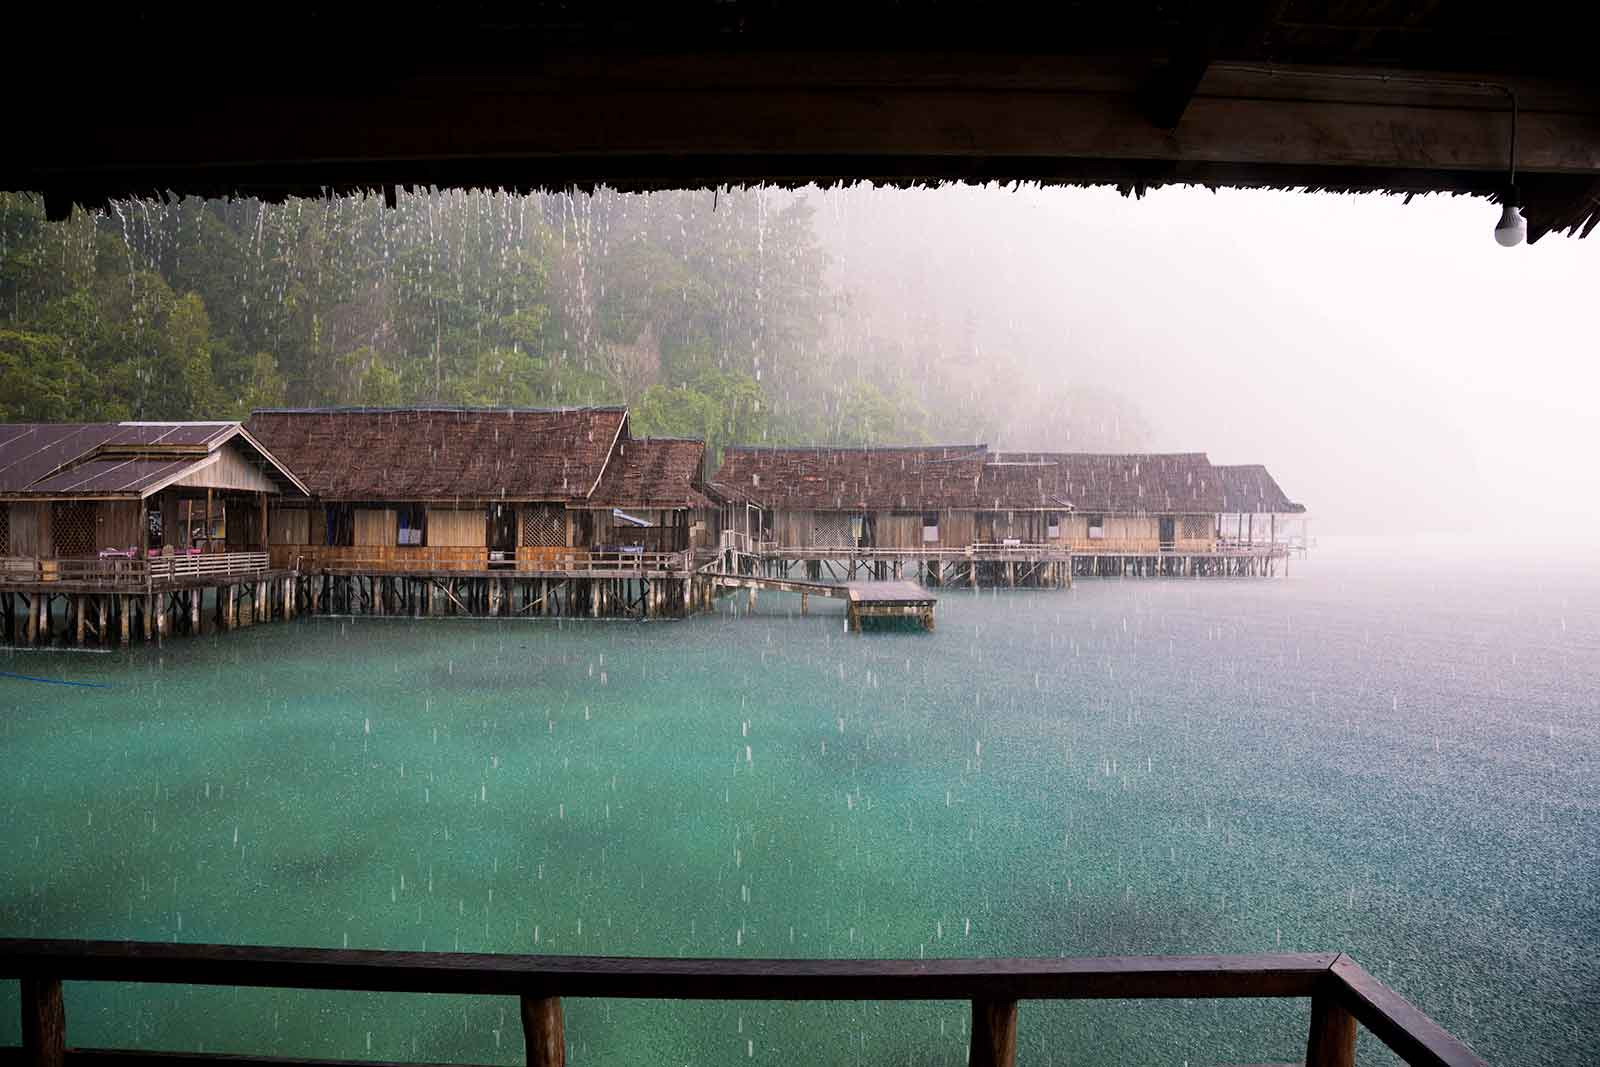 Maluku Islands: If you're visiting Indonesia during the rainy season, you'll have to face downpours like this quite often. Sometimes it rains for days, sometimes the rain stops just as fast as it came. Here we were at Lisar Bahari Resort in Sawai on Seram island and it was actually a mystical atmosphere being above the water with this heavy storm hitting us.